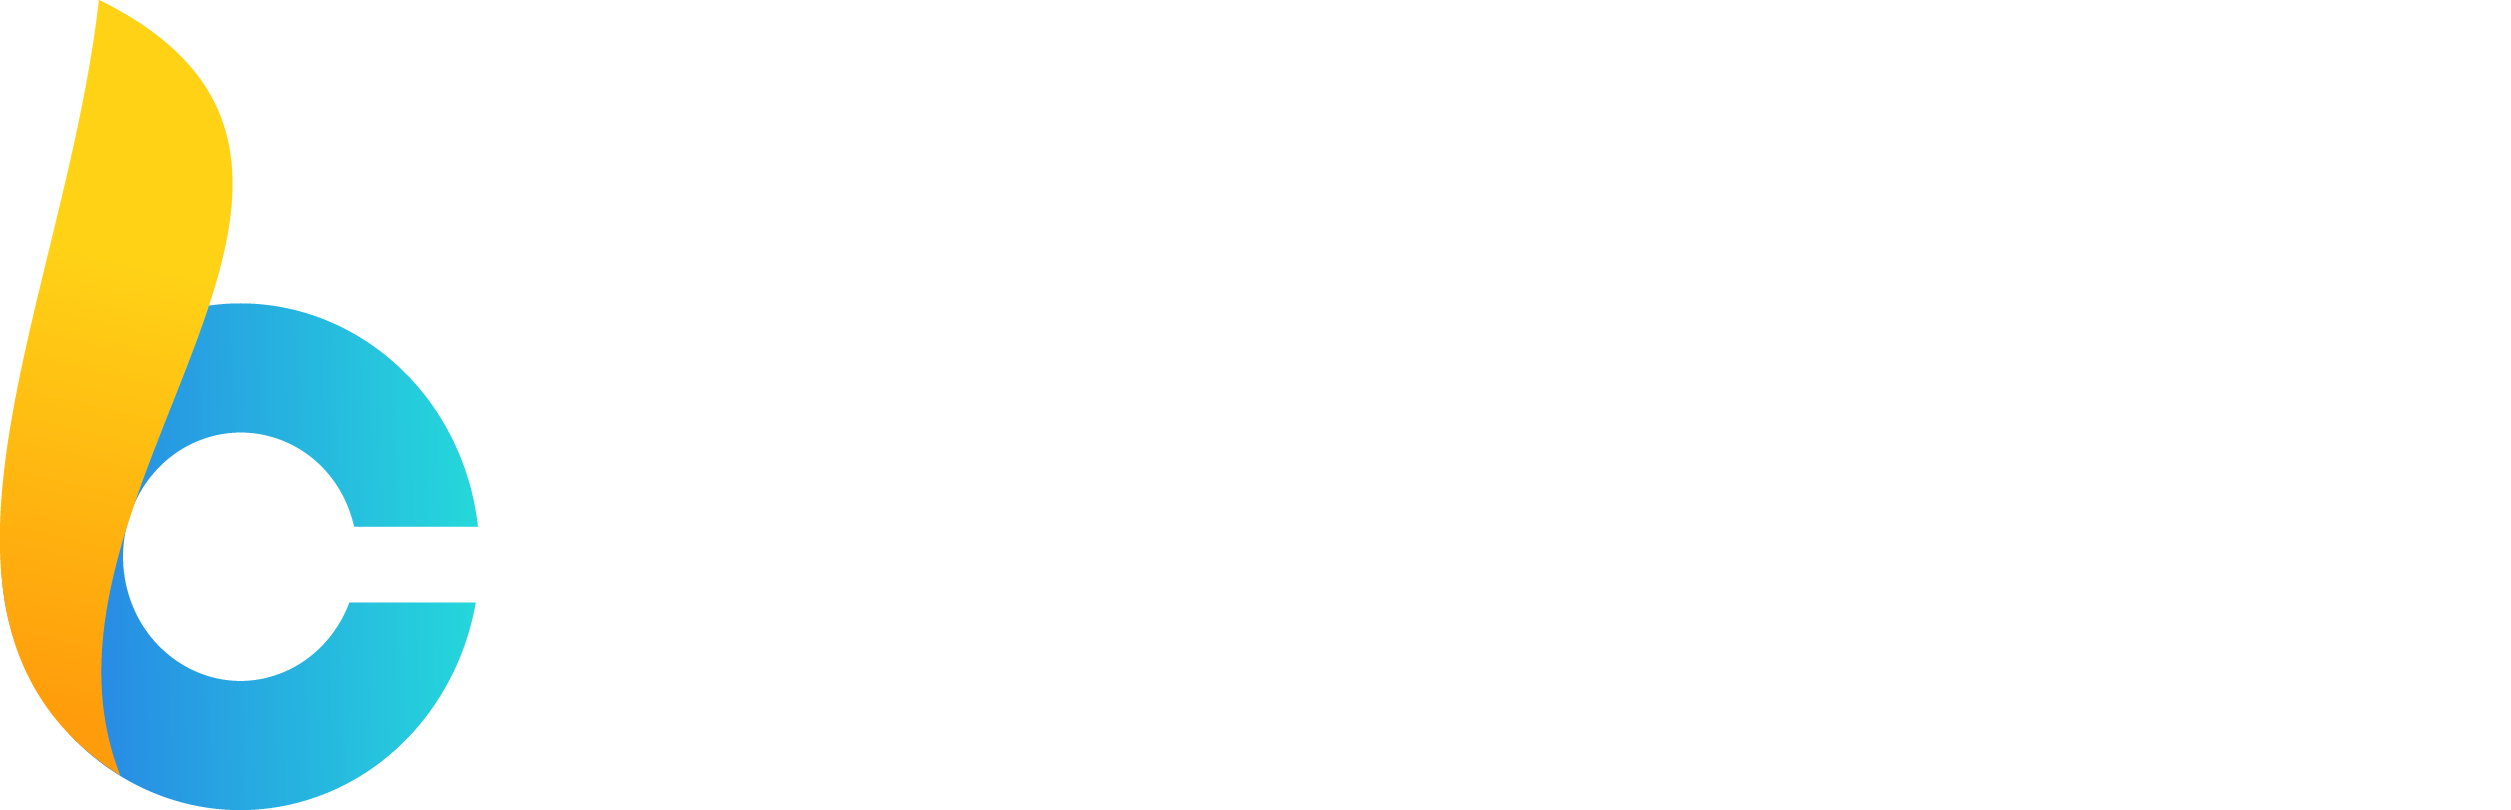 BrainCraft Limited